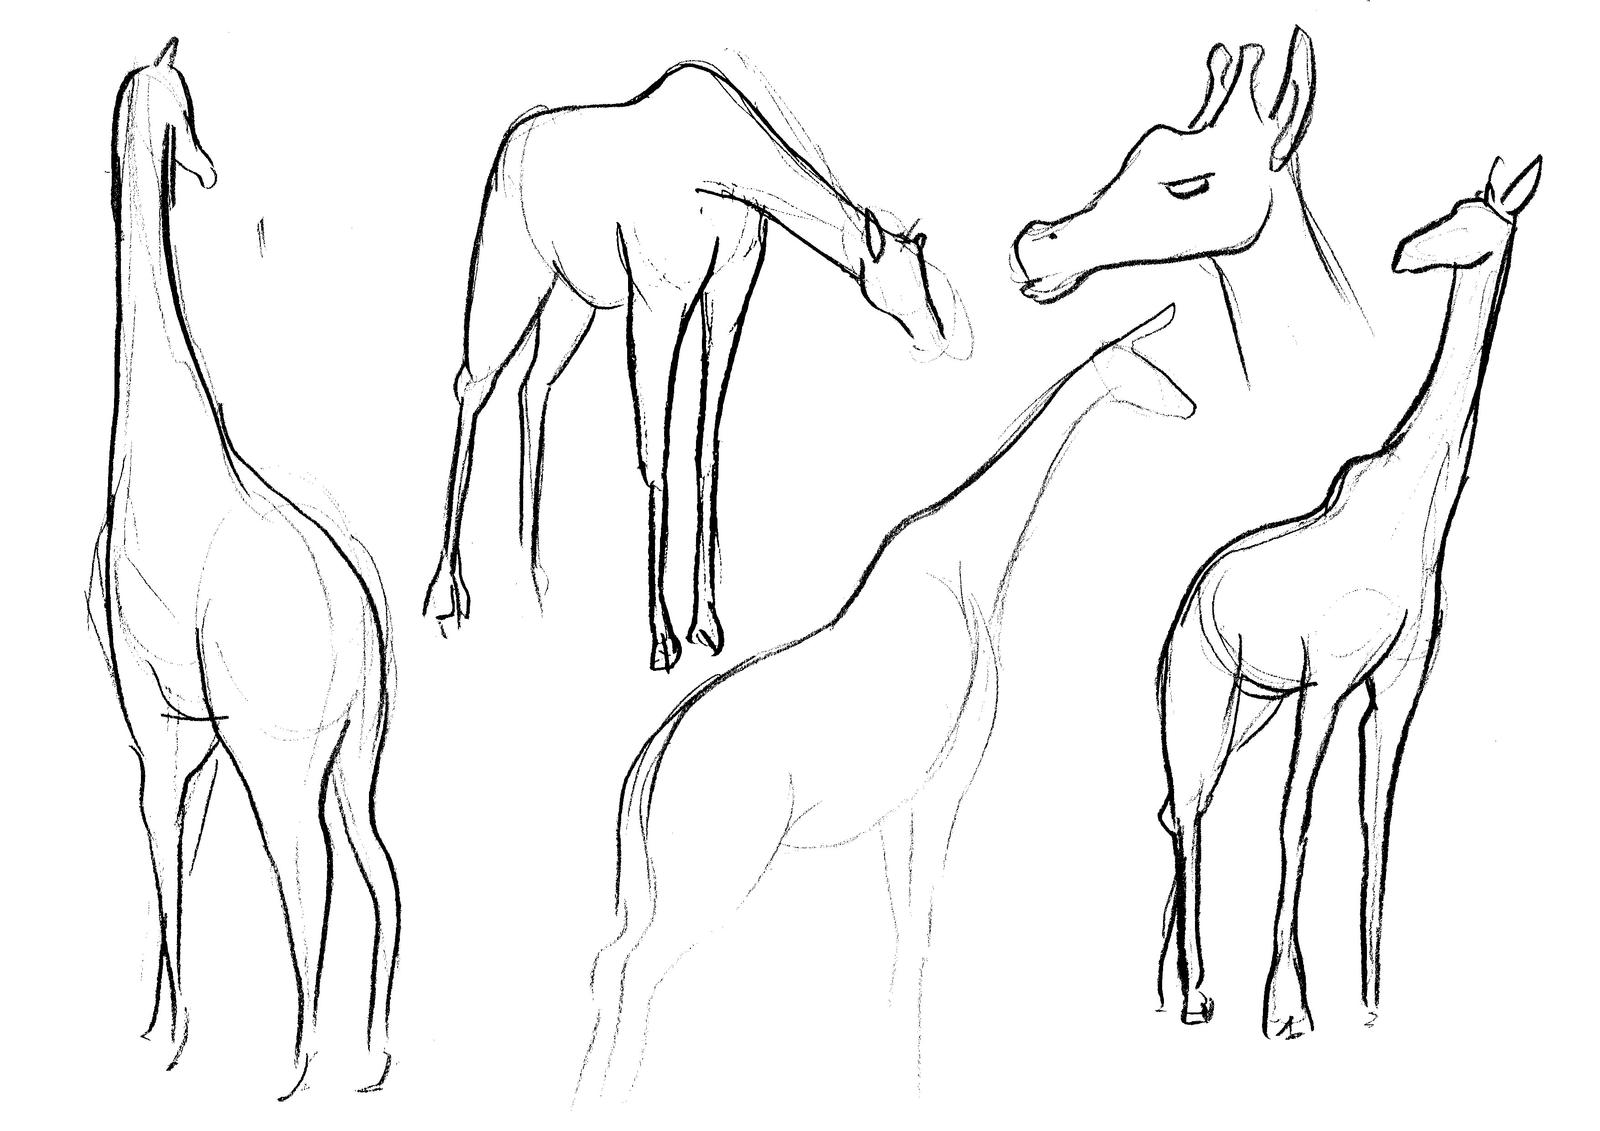 Giraffe sketches by Adele-Waldrom on DeviantArt - photo#27